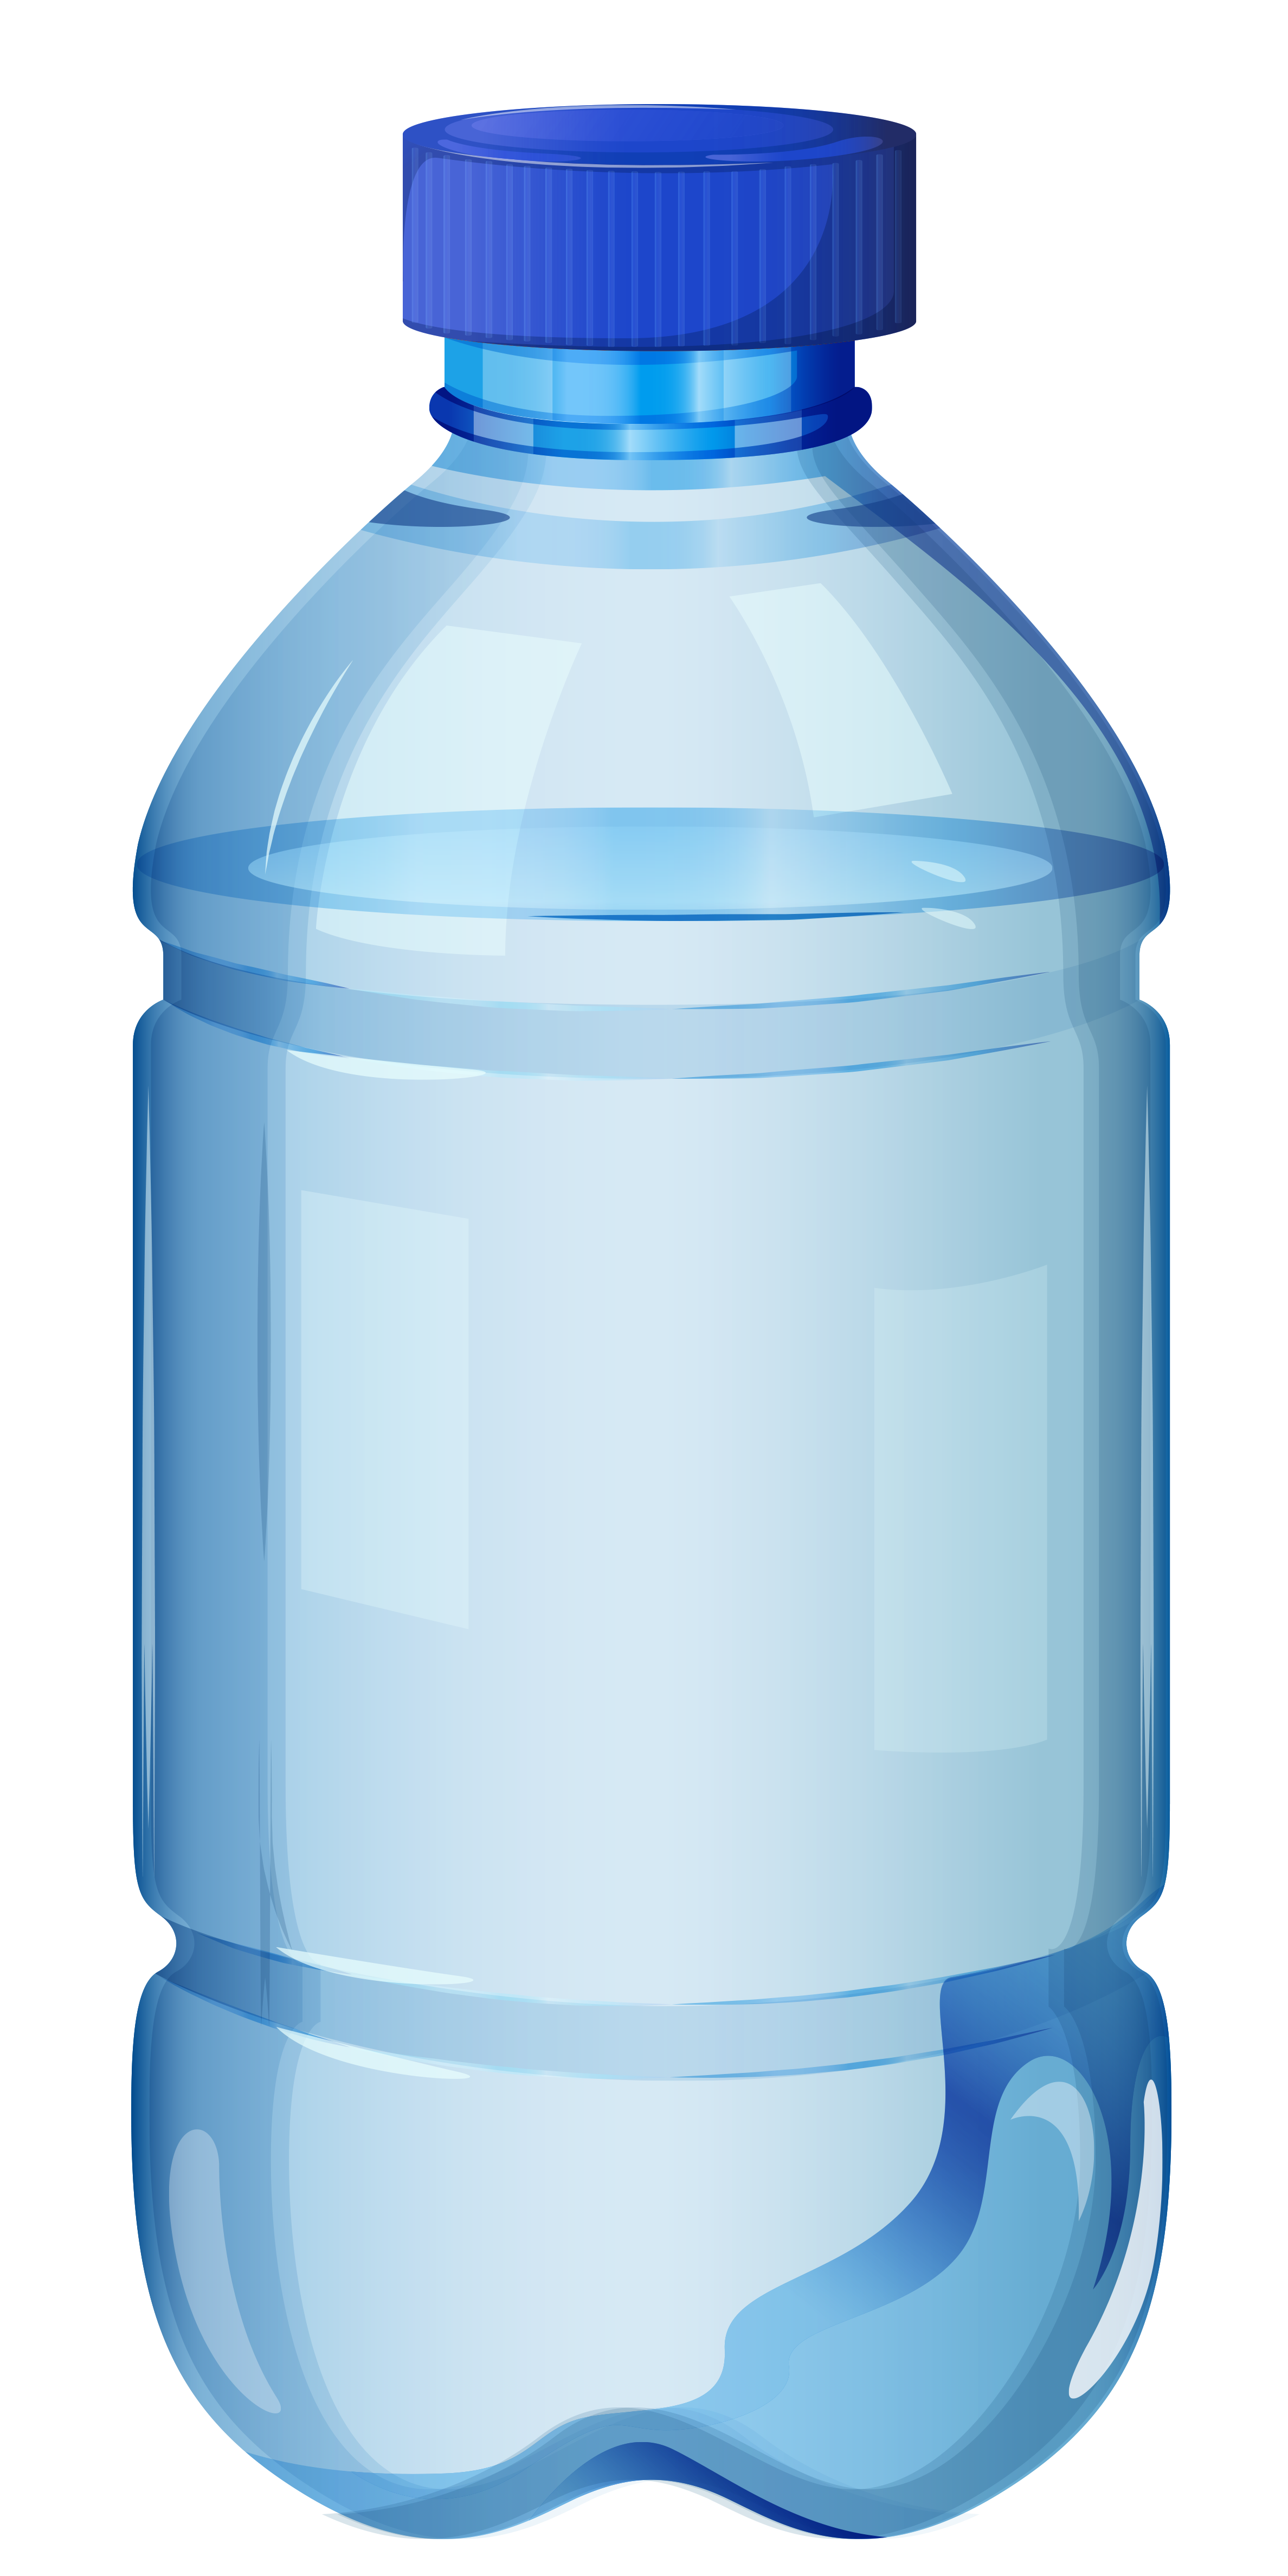 graphic royalty free stock Water clipart. Bottle png image cliparts.